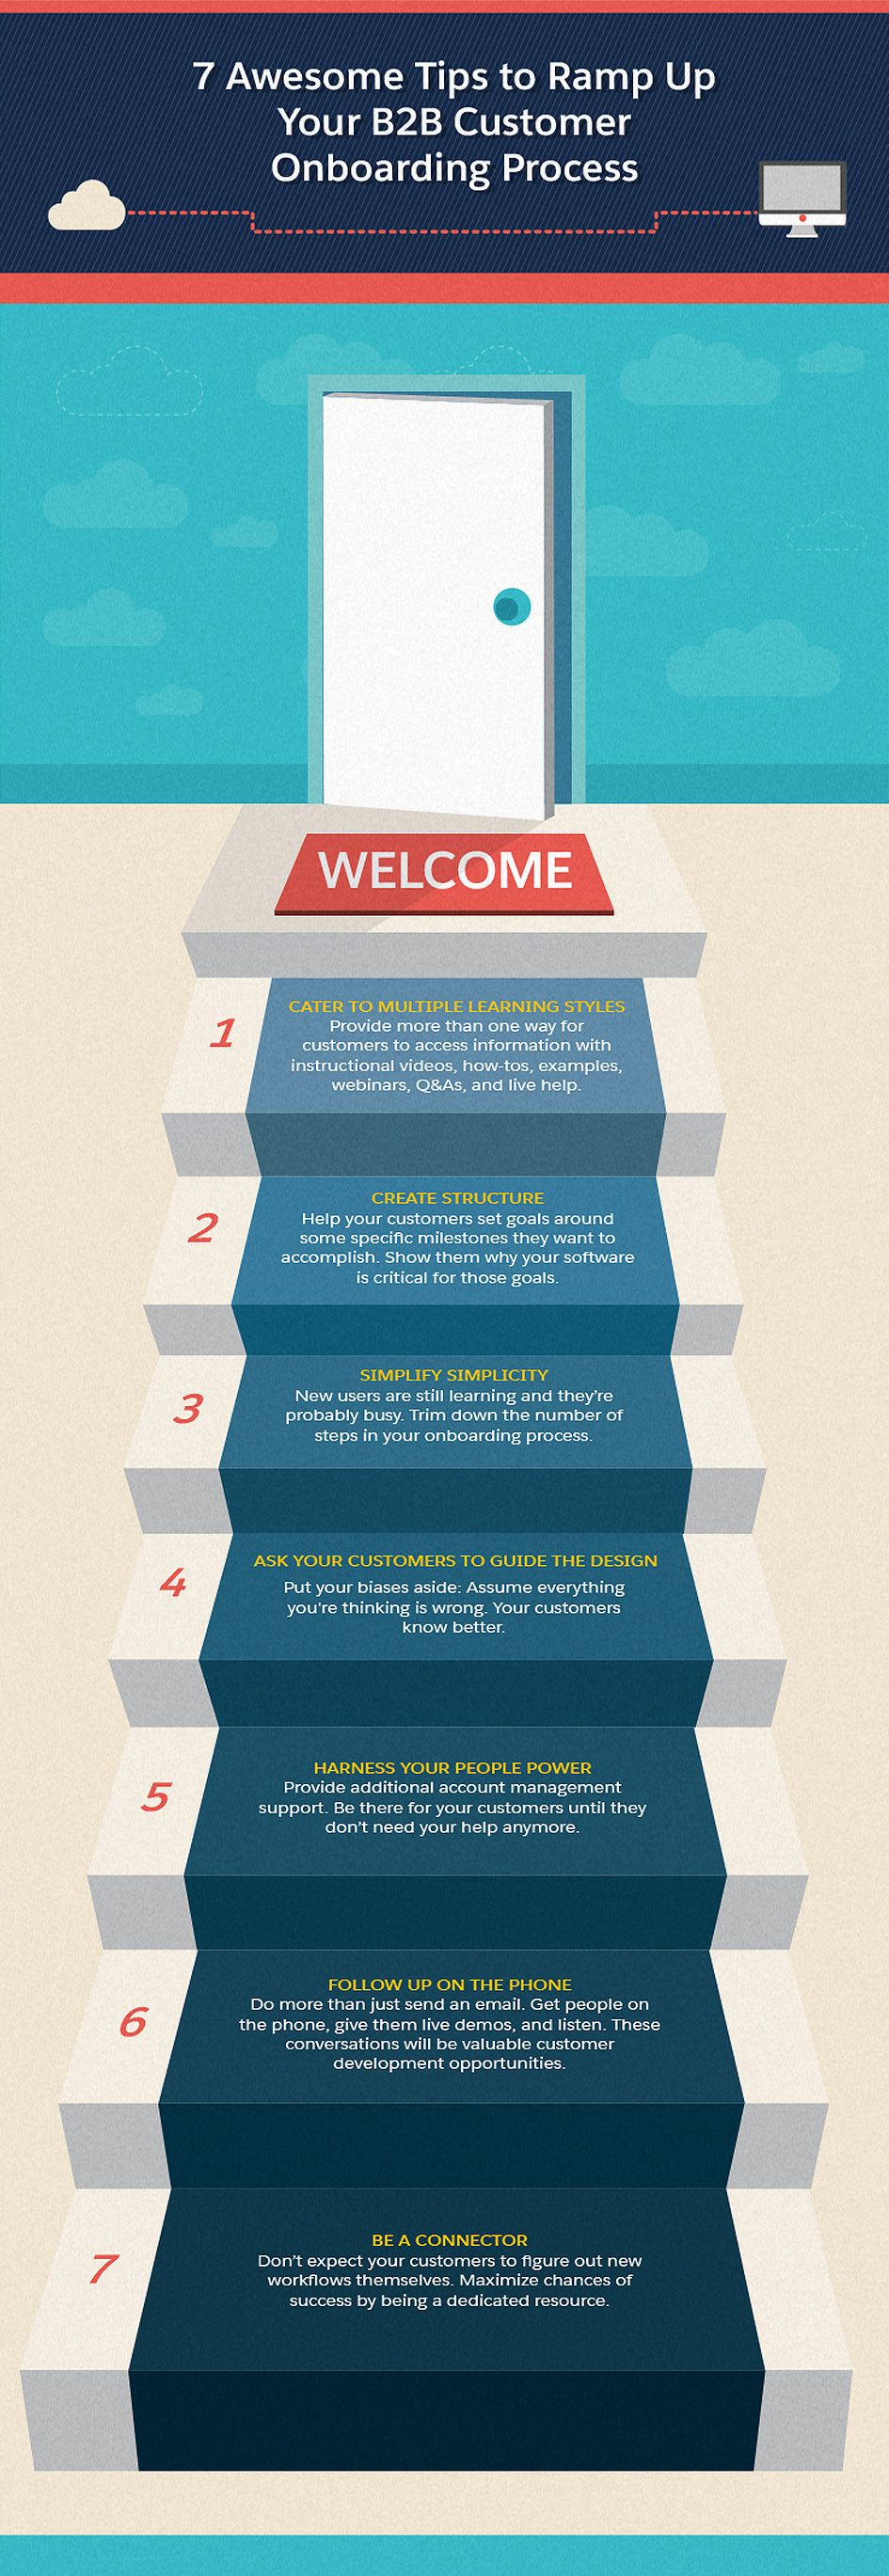 7 Awesome Tips to Ramp Up Your B2B Customer Onboarding Process ...